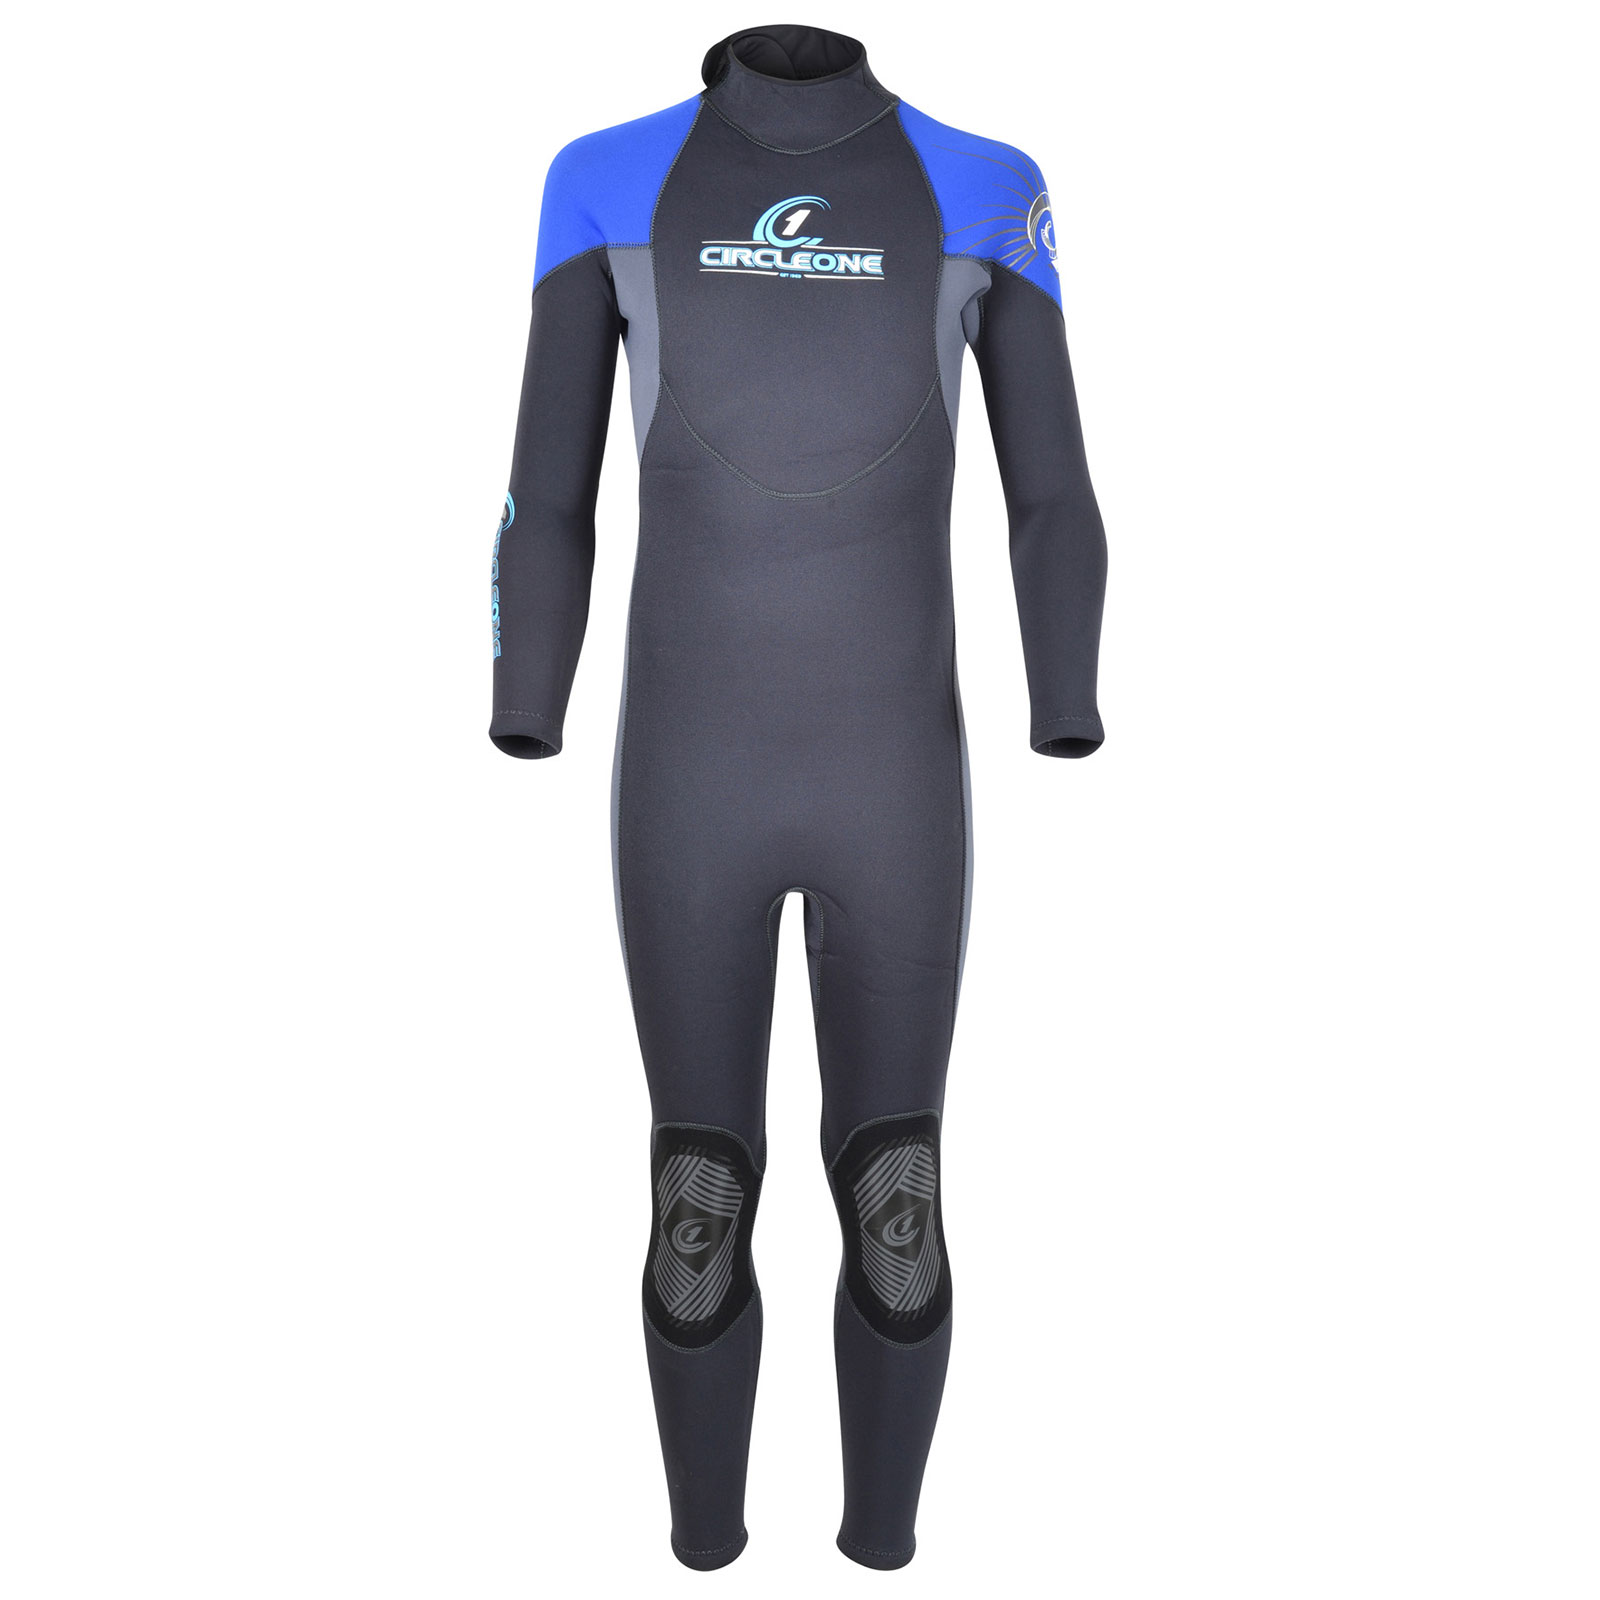 ARC Kids 5/4/3mm Four Season Centre Wetsuit